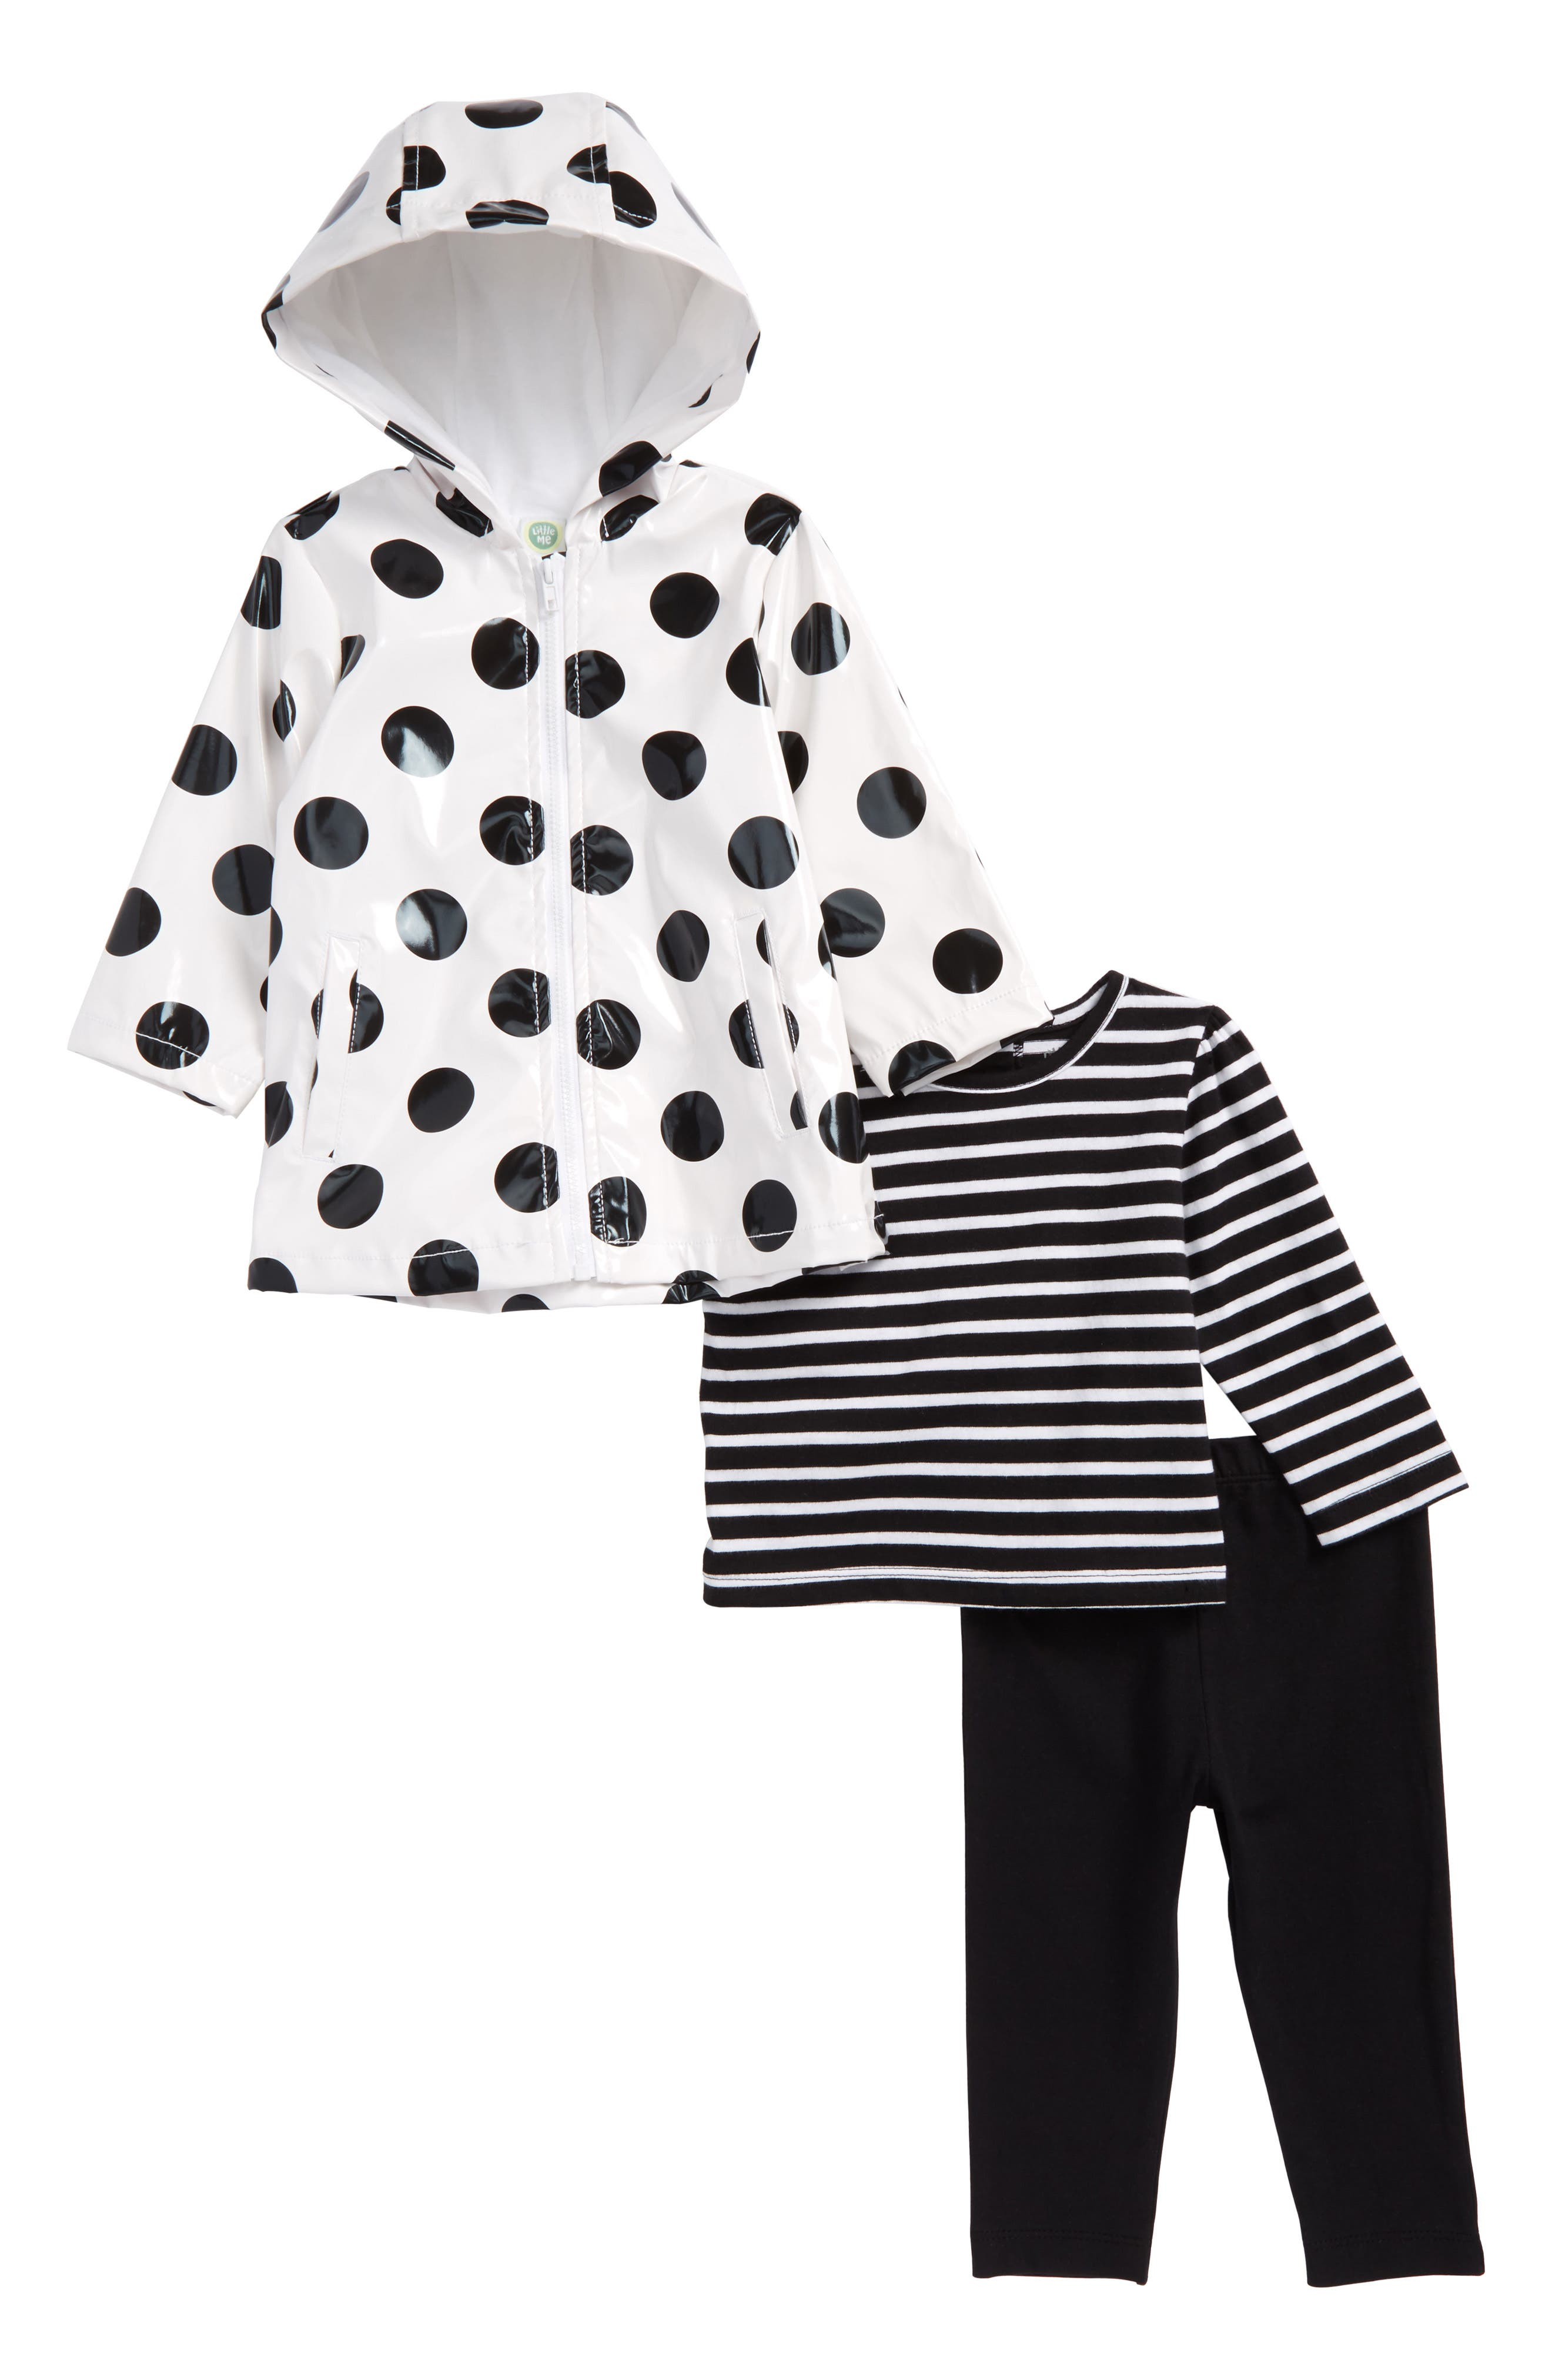 Alternate Image 1 Selected - Little Me Daisy Stripe Tee, Leggings & Polka Dot Hooded Raincoat Set (Baby Girls)